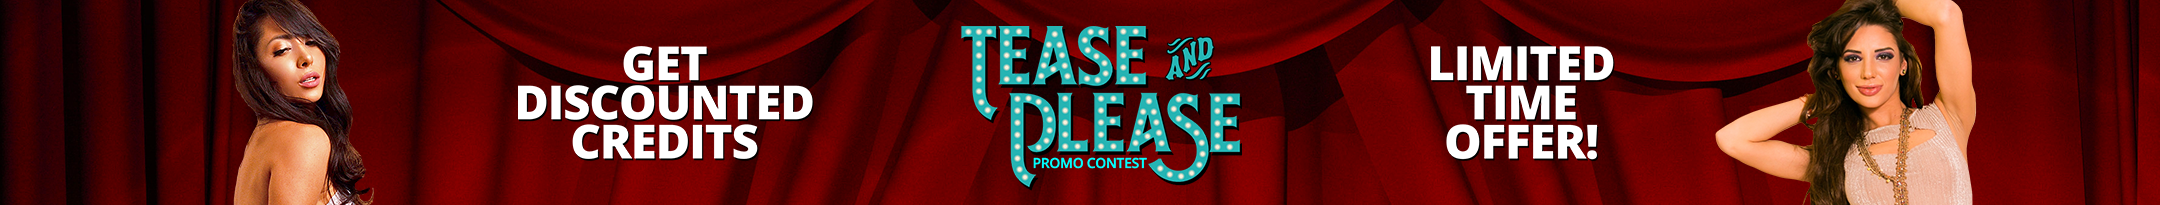 Tease and Please Promo